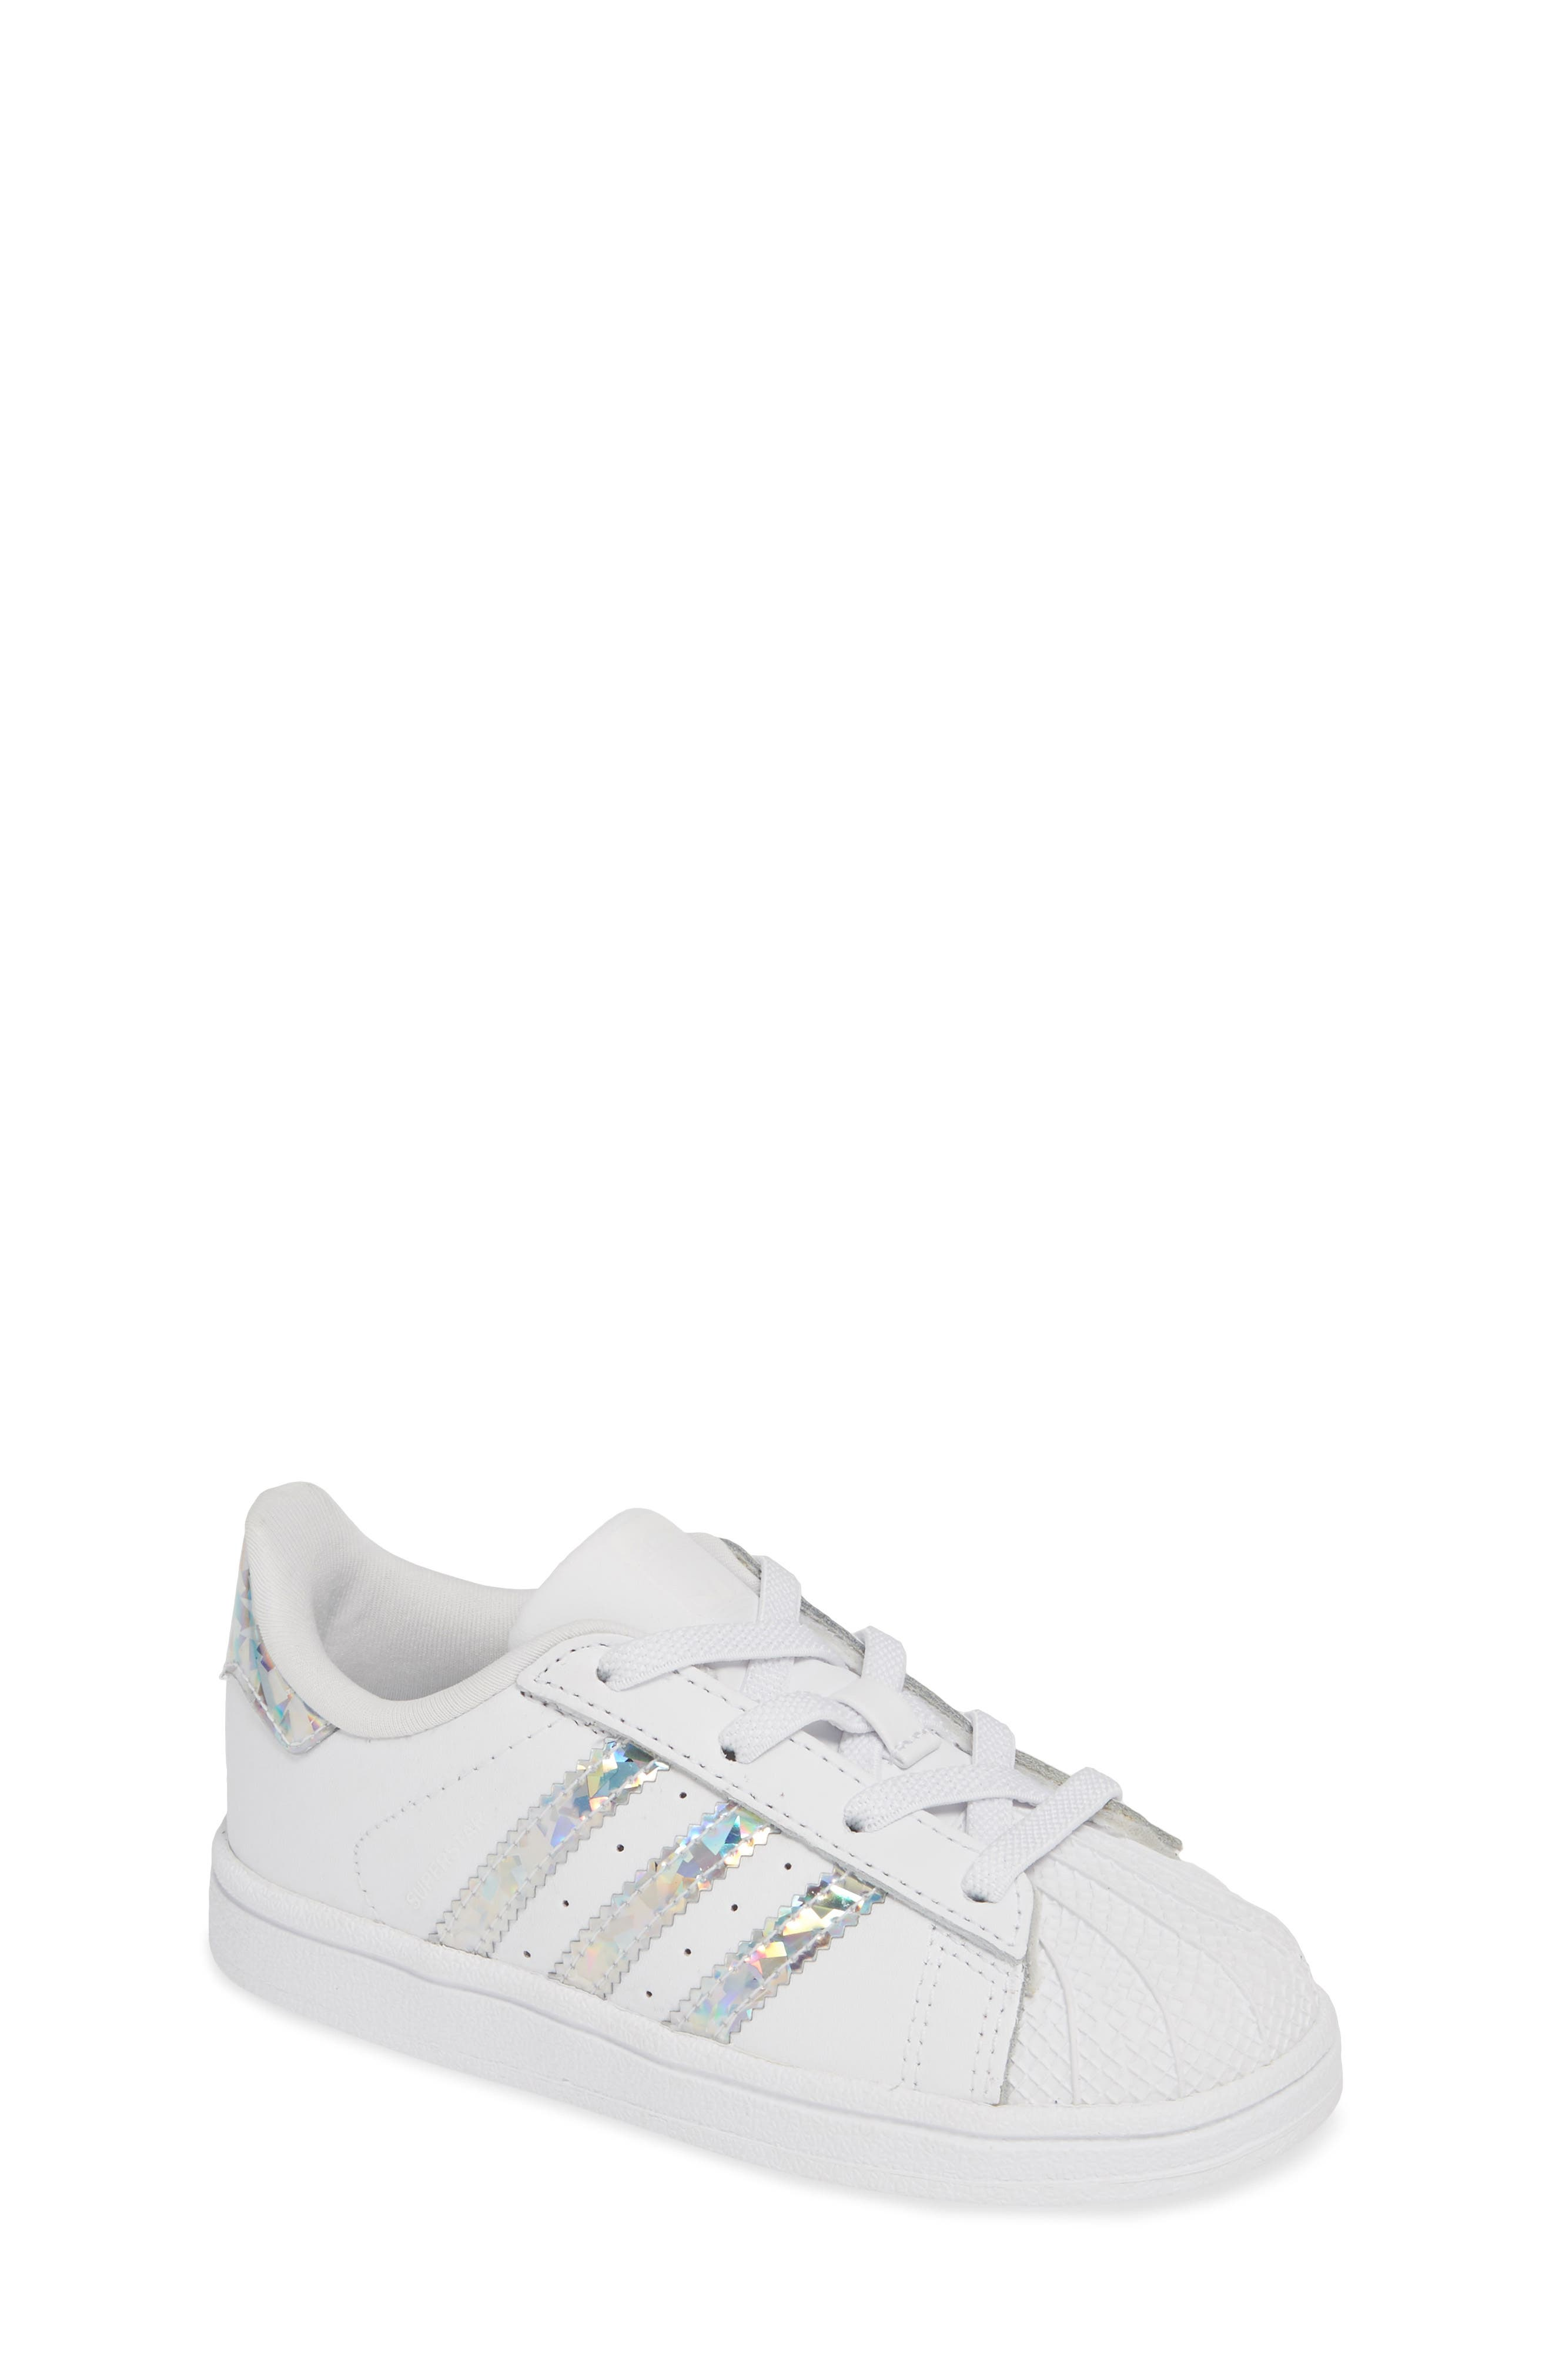 best loved 00c2b 8fe40 Big Girls Adidas Shoes (Sizes 3.5-7)  Nordstrom